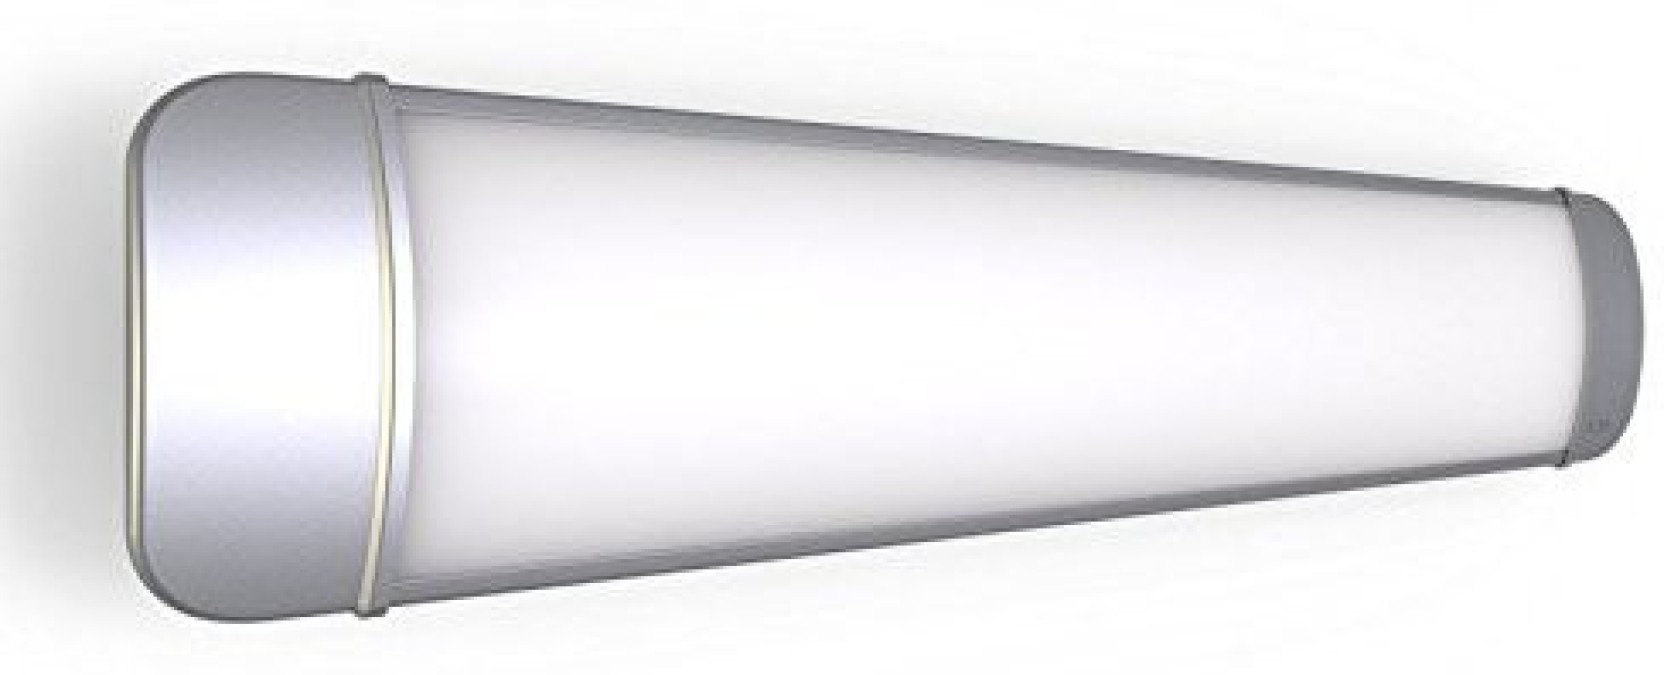 Wall Lamps Flipkart : Philips Picture Light Wall Lamp Price in India - Buy Philips Picture Light Wall Lamp online at ...